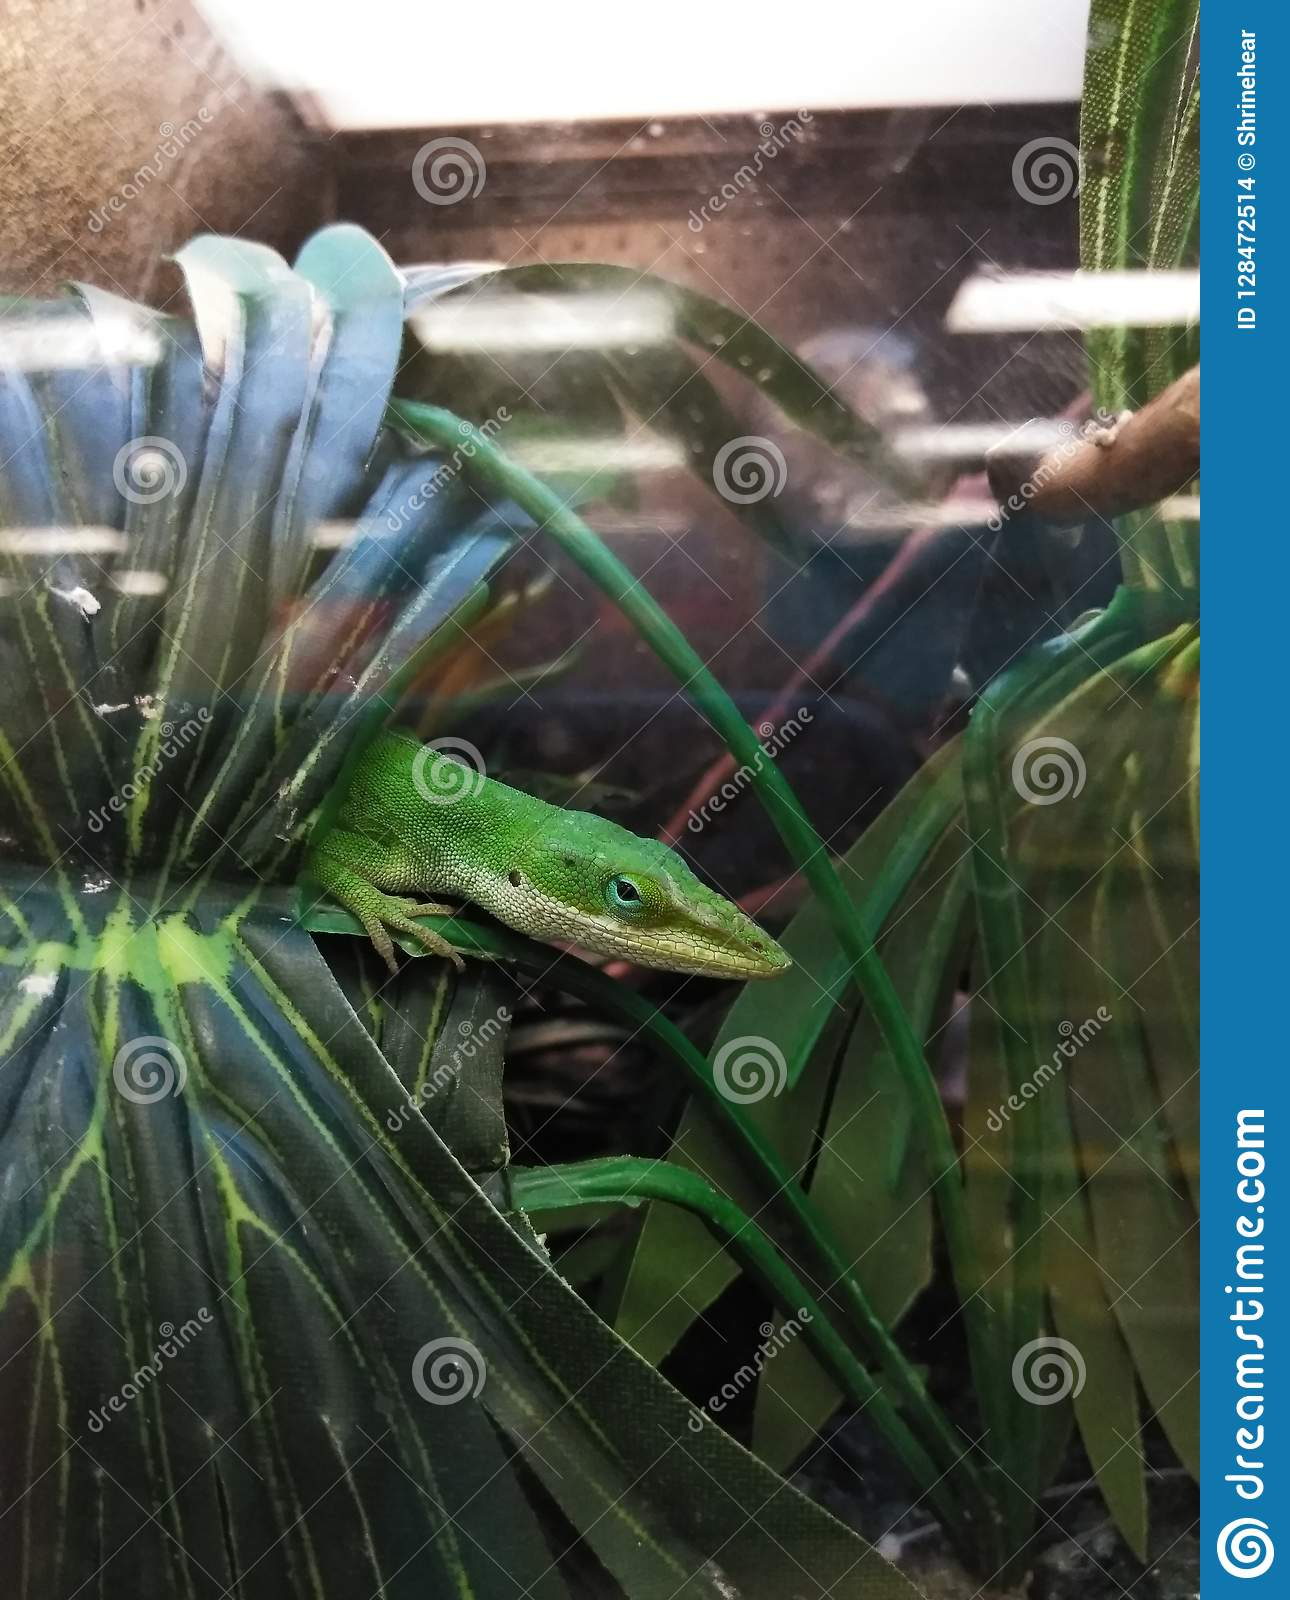 Lizard in a Pet Store Cage